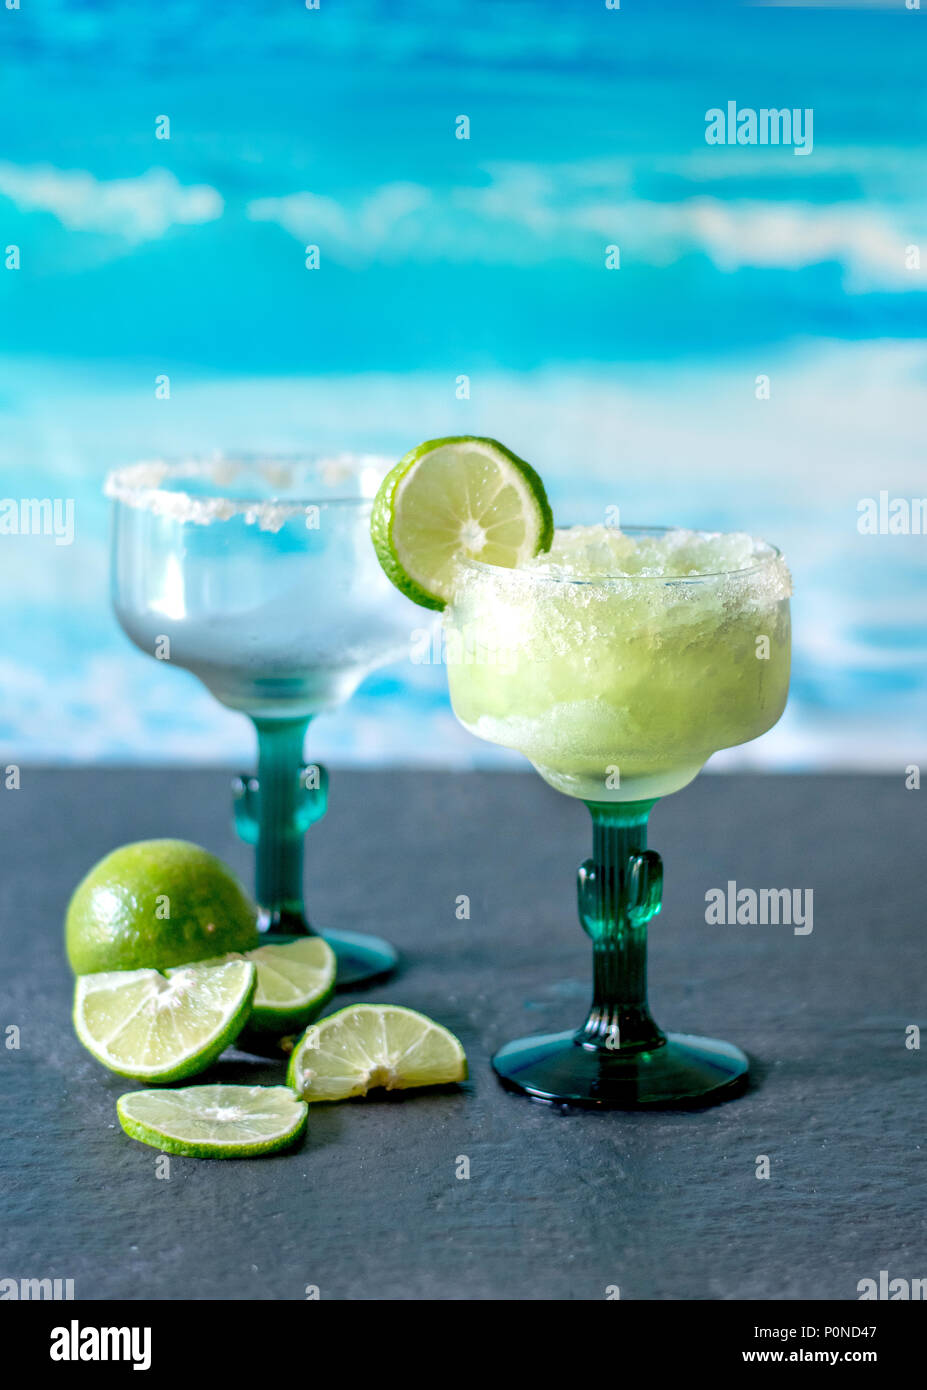 cold and icy frozen margarita drinks with slices of lime - Stock Image